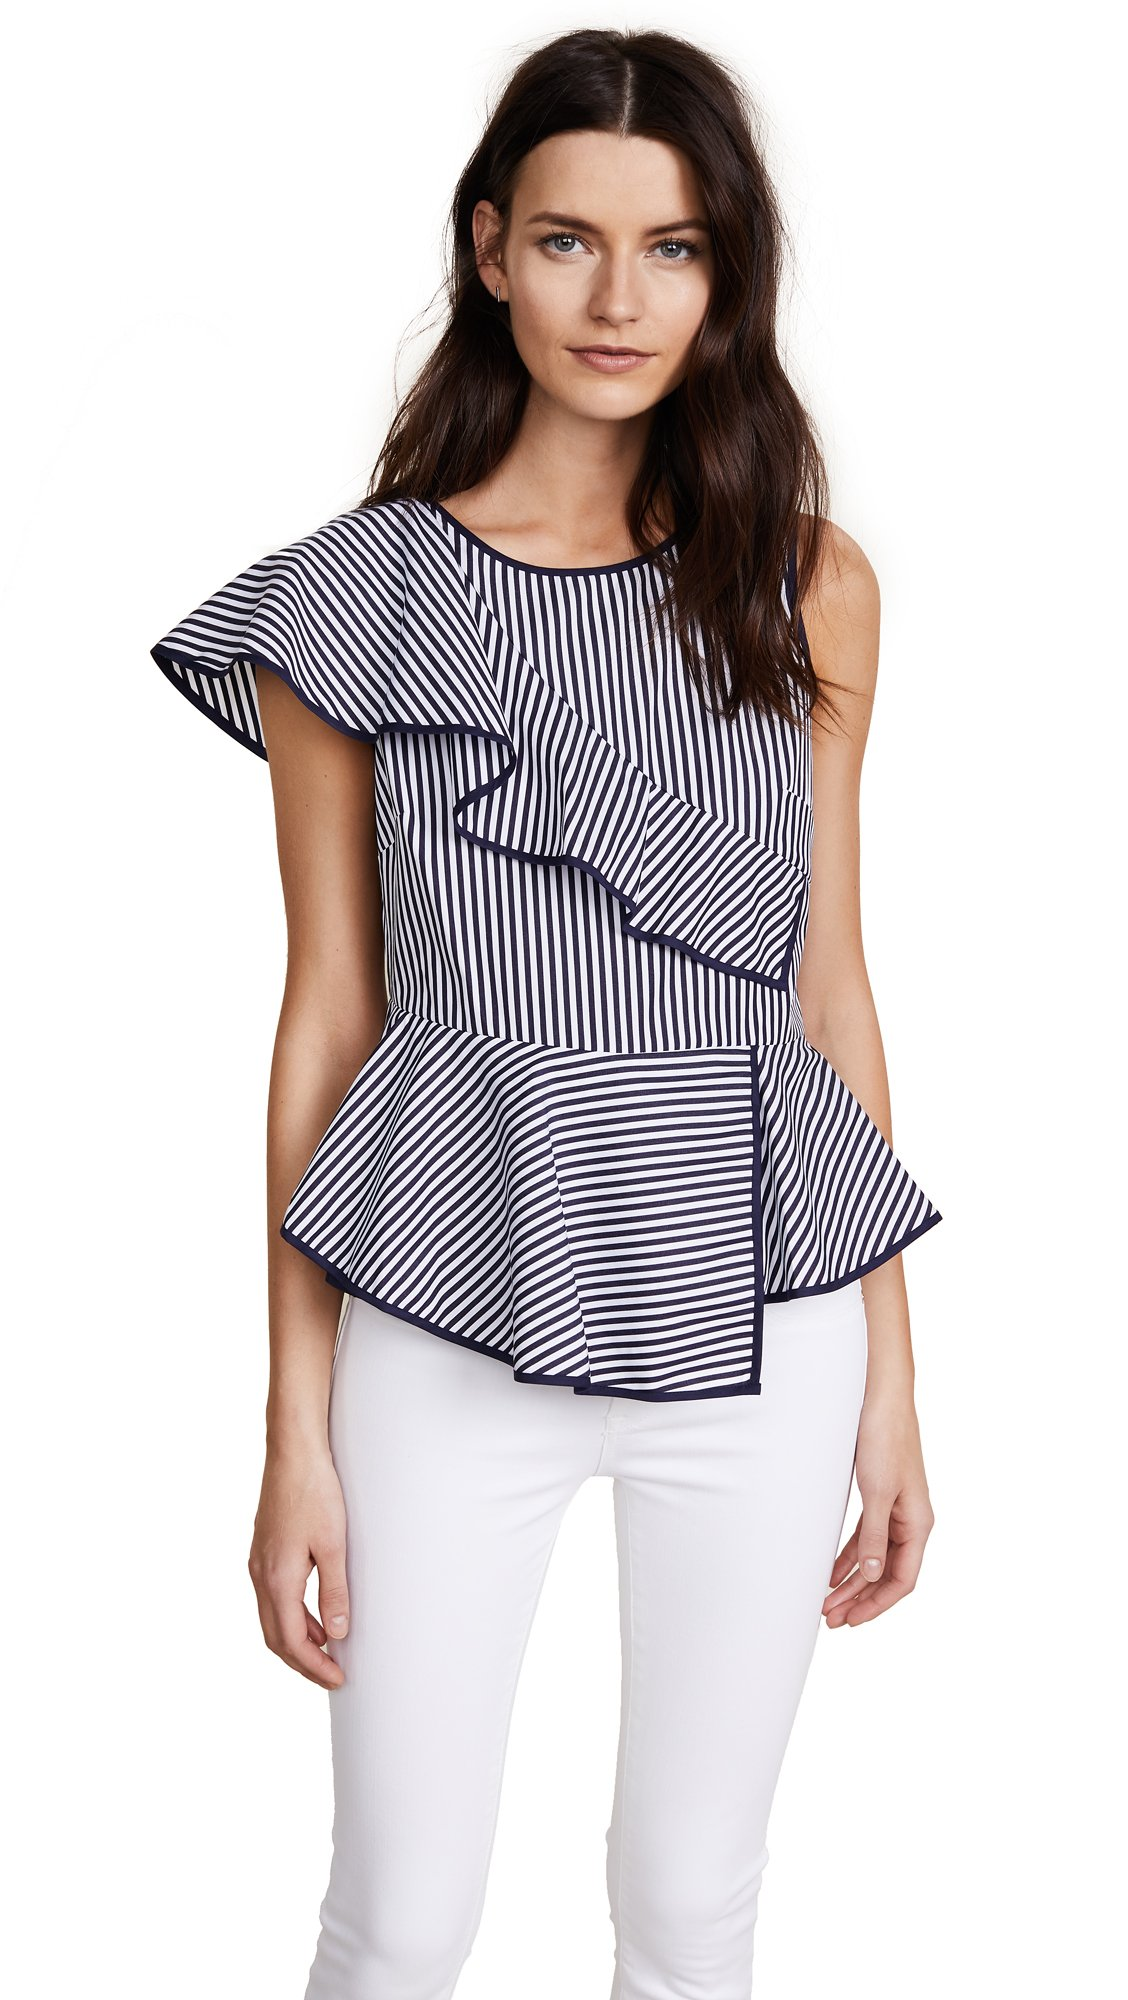 Parker Women's Carly Top, Navy/White, S